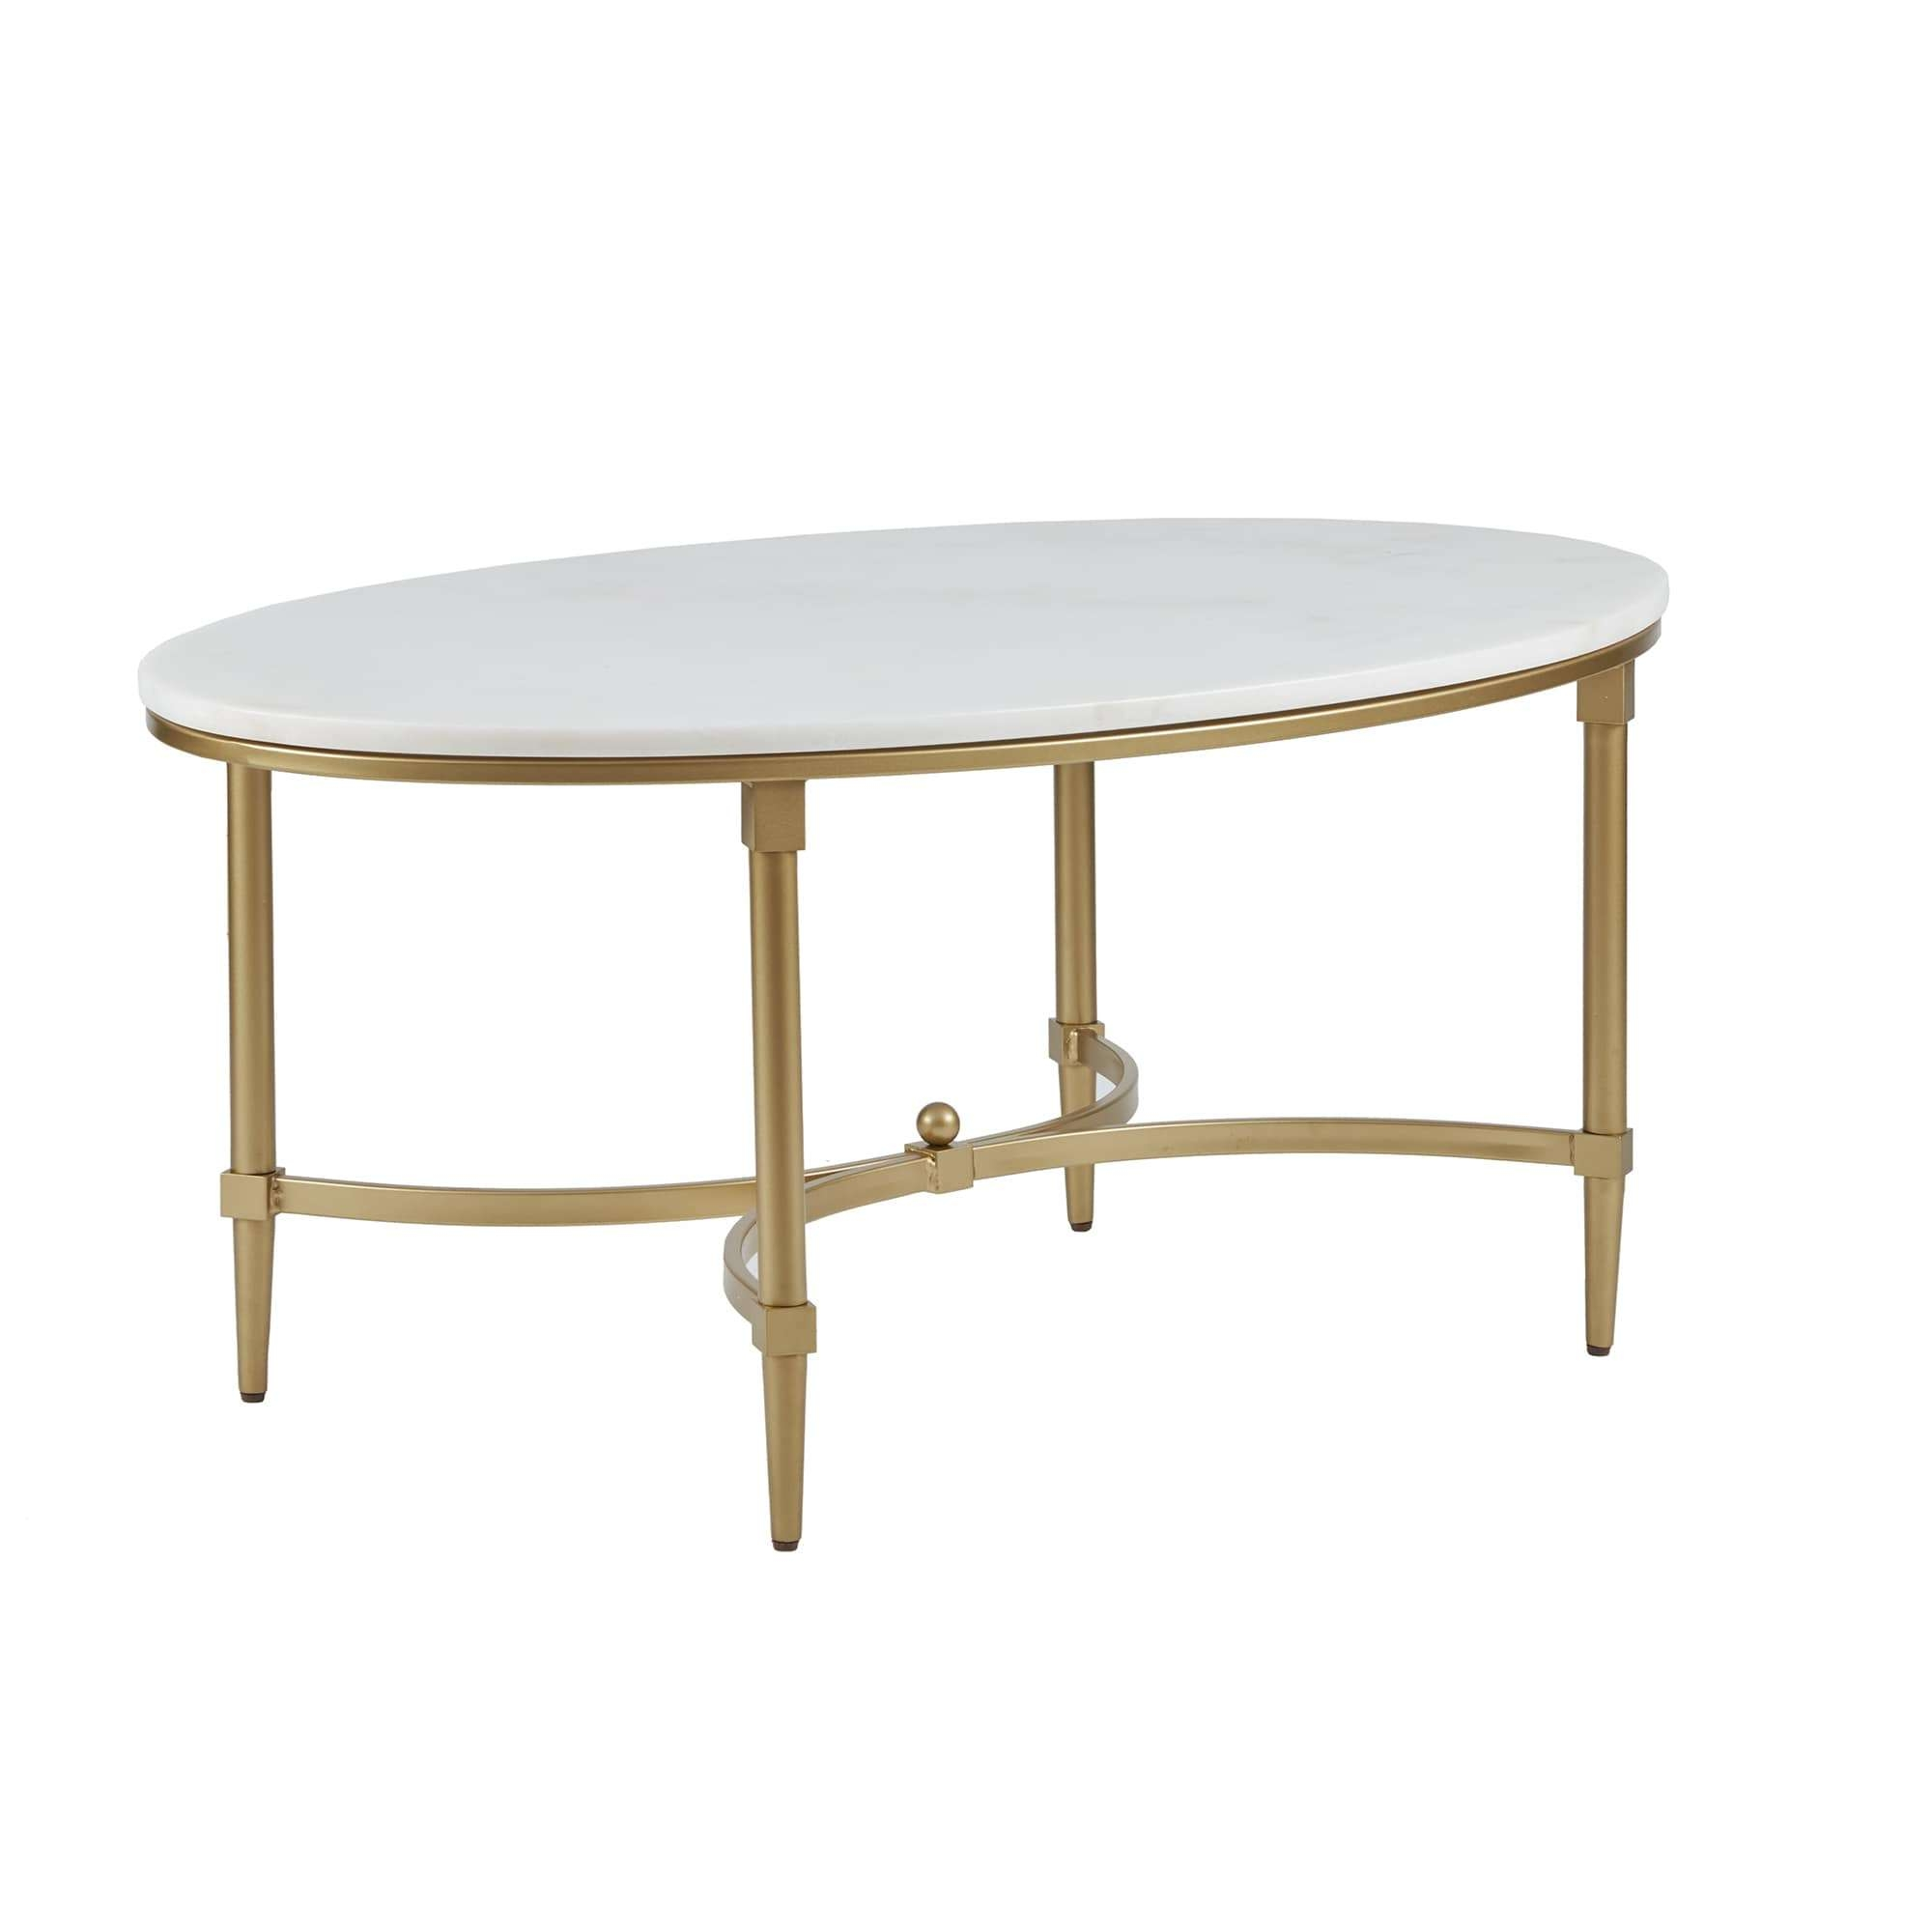 Most Recent Bordeaux Coffee Tables Intended For Madison Park Signature Bordeaux Goldtone Metal Oval Coffee Table (View 15 of 20)